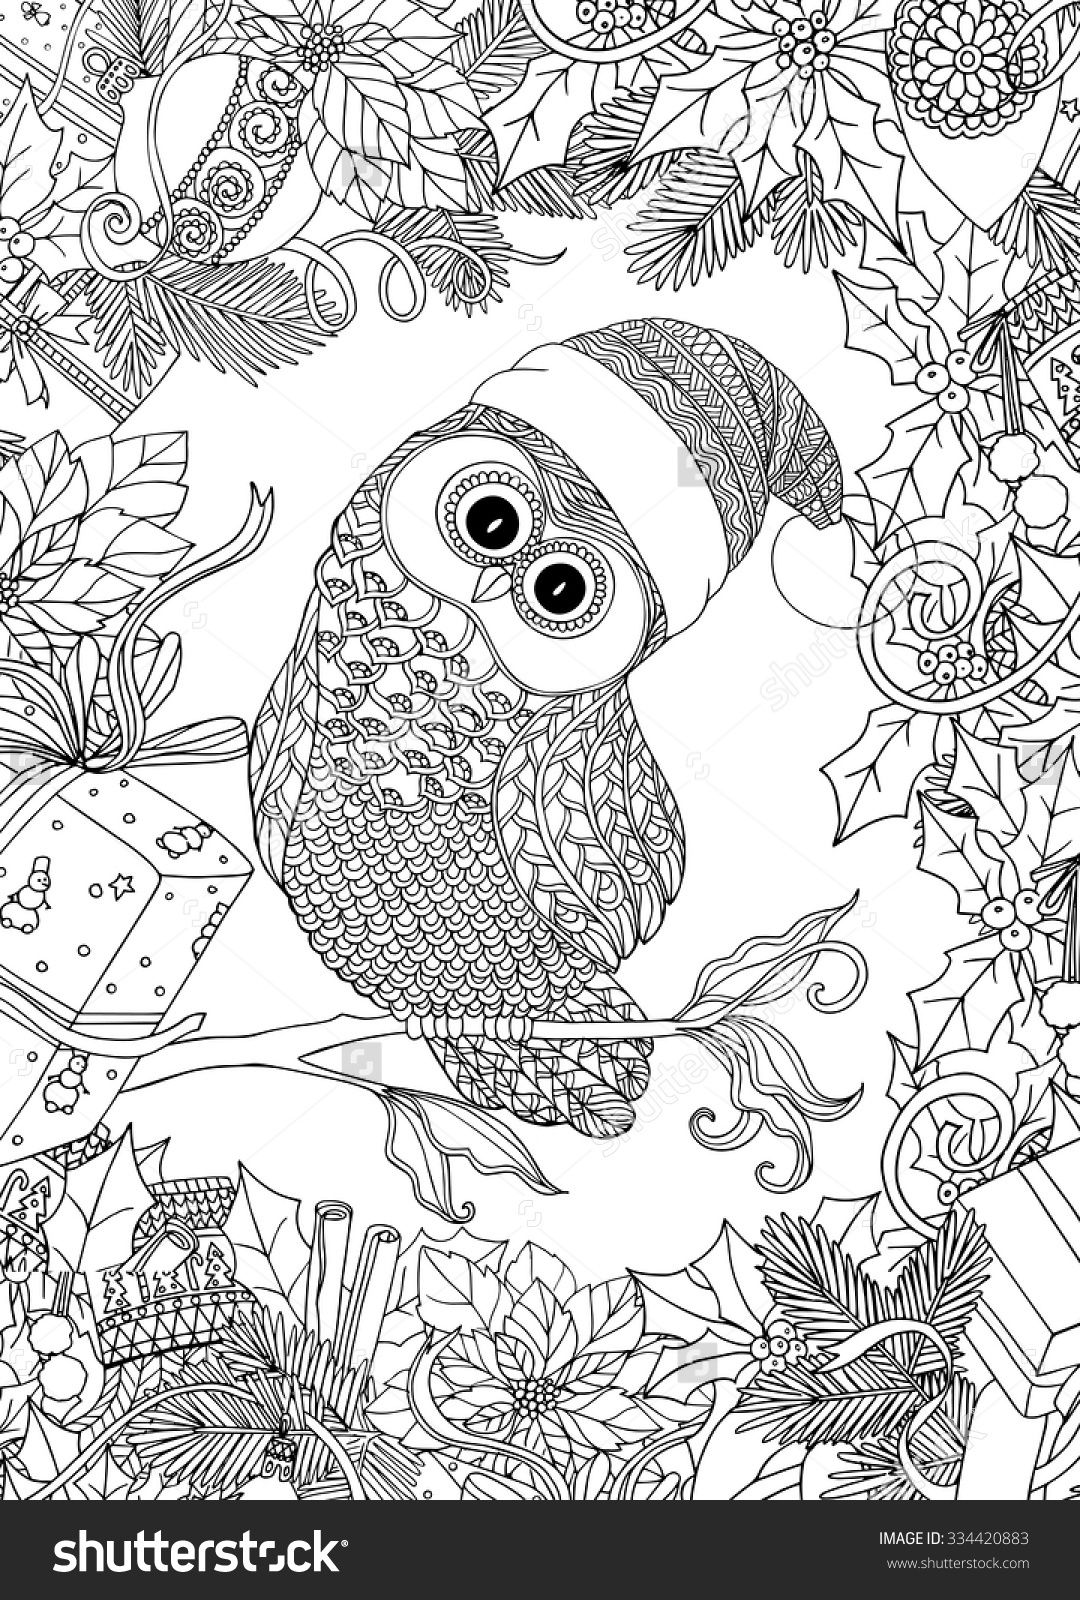 Christmas Coloring Pages For Older Students With Adult Google Search And Teen